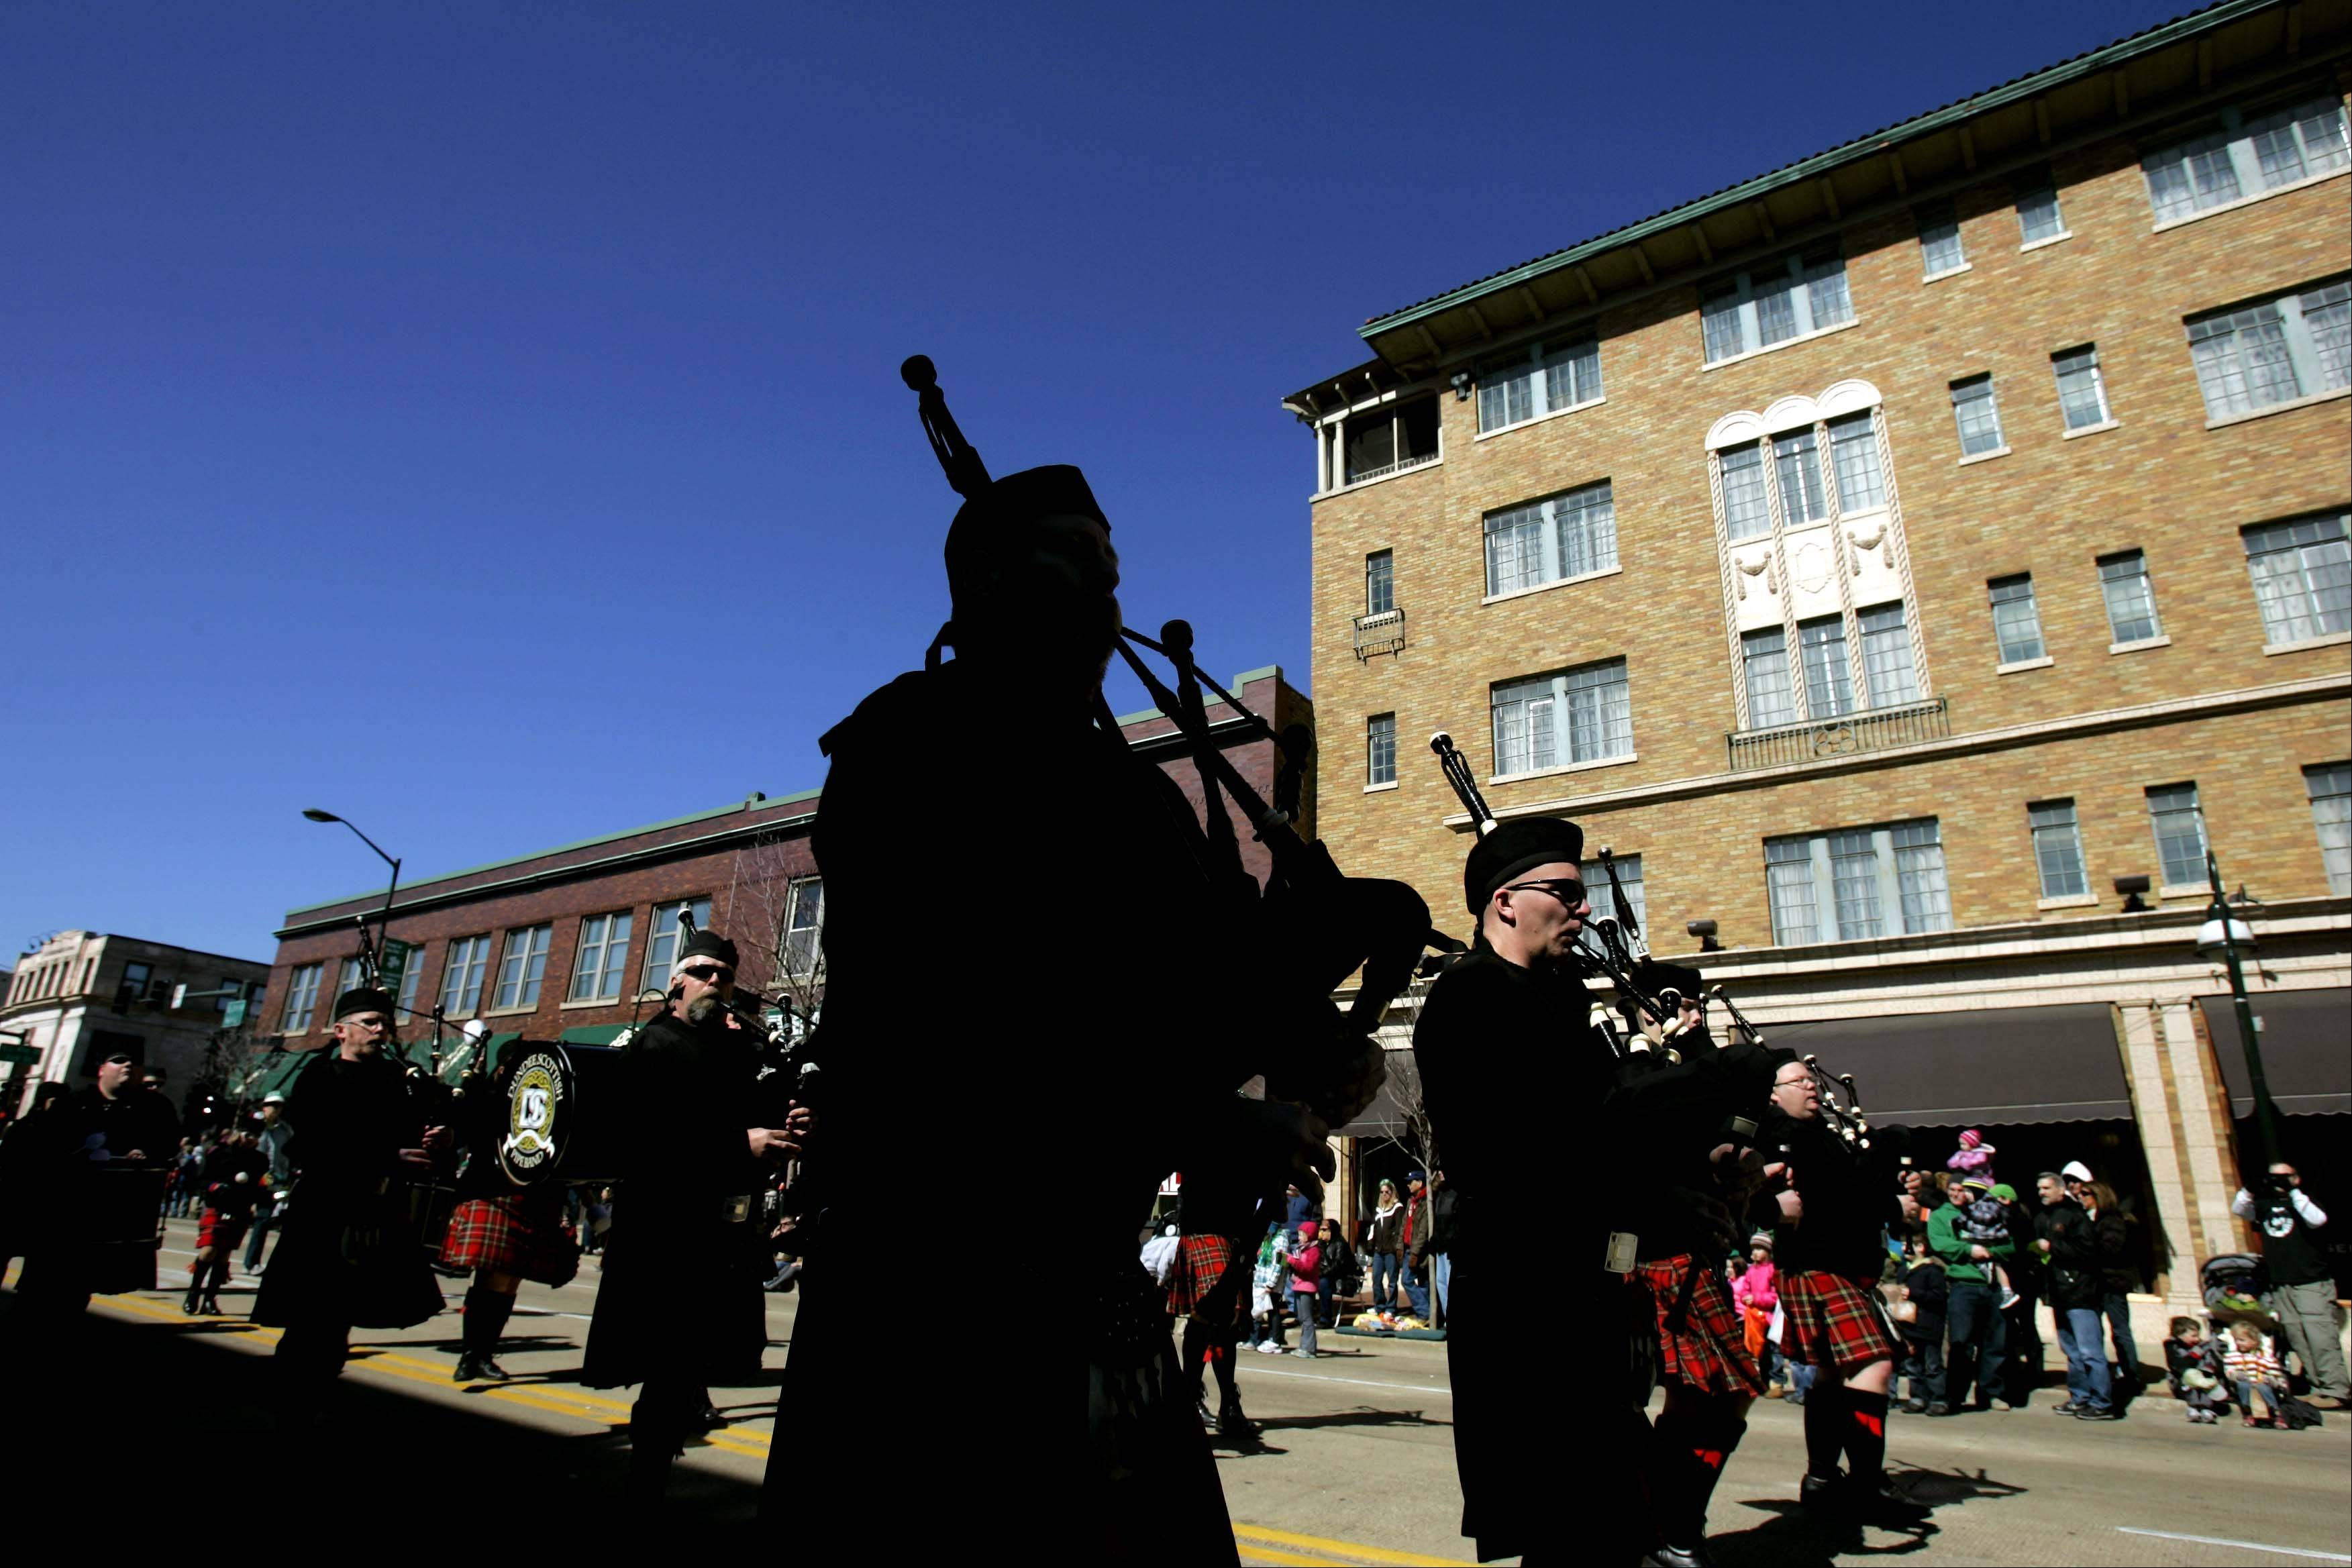 The Dundee Scottish Pipe Band plays as it passes in front of the Baker Hotel during last year's St. Patrick's Day parade in St. Charles.